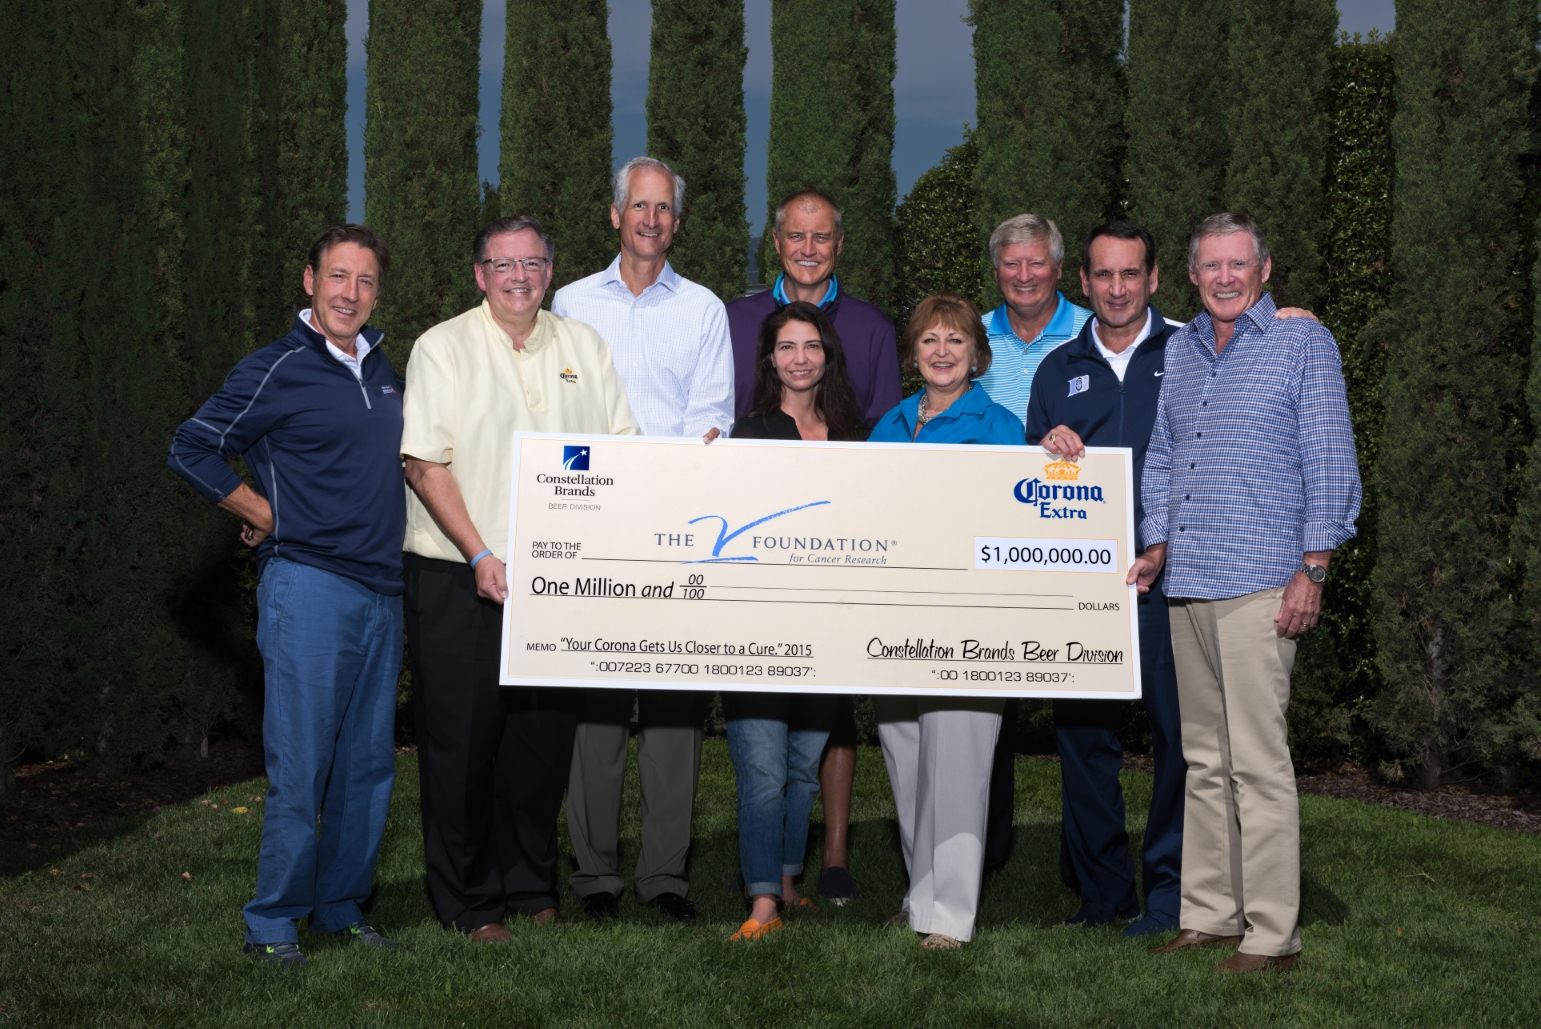 Constellation Brands Raises Money for Cancer Research